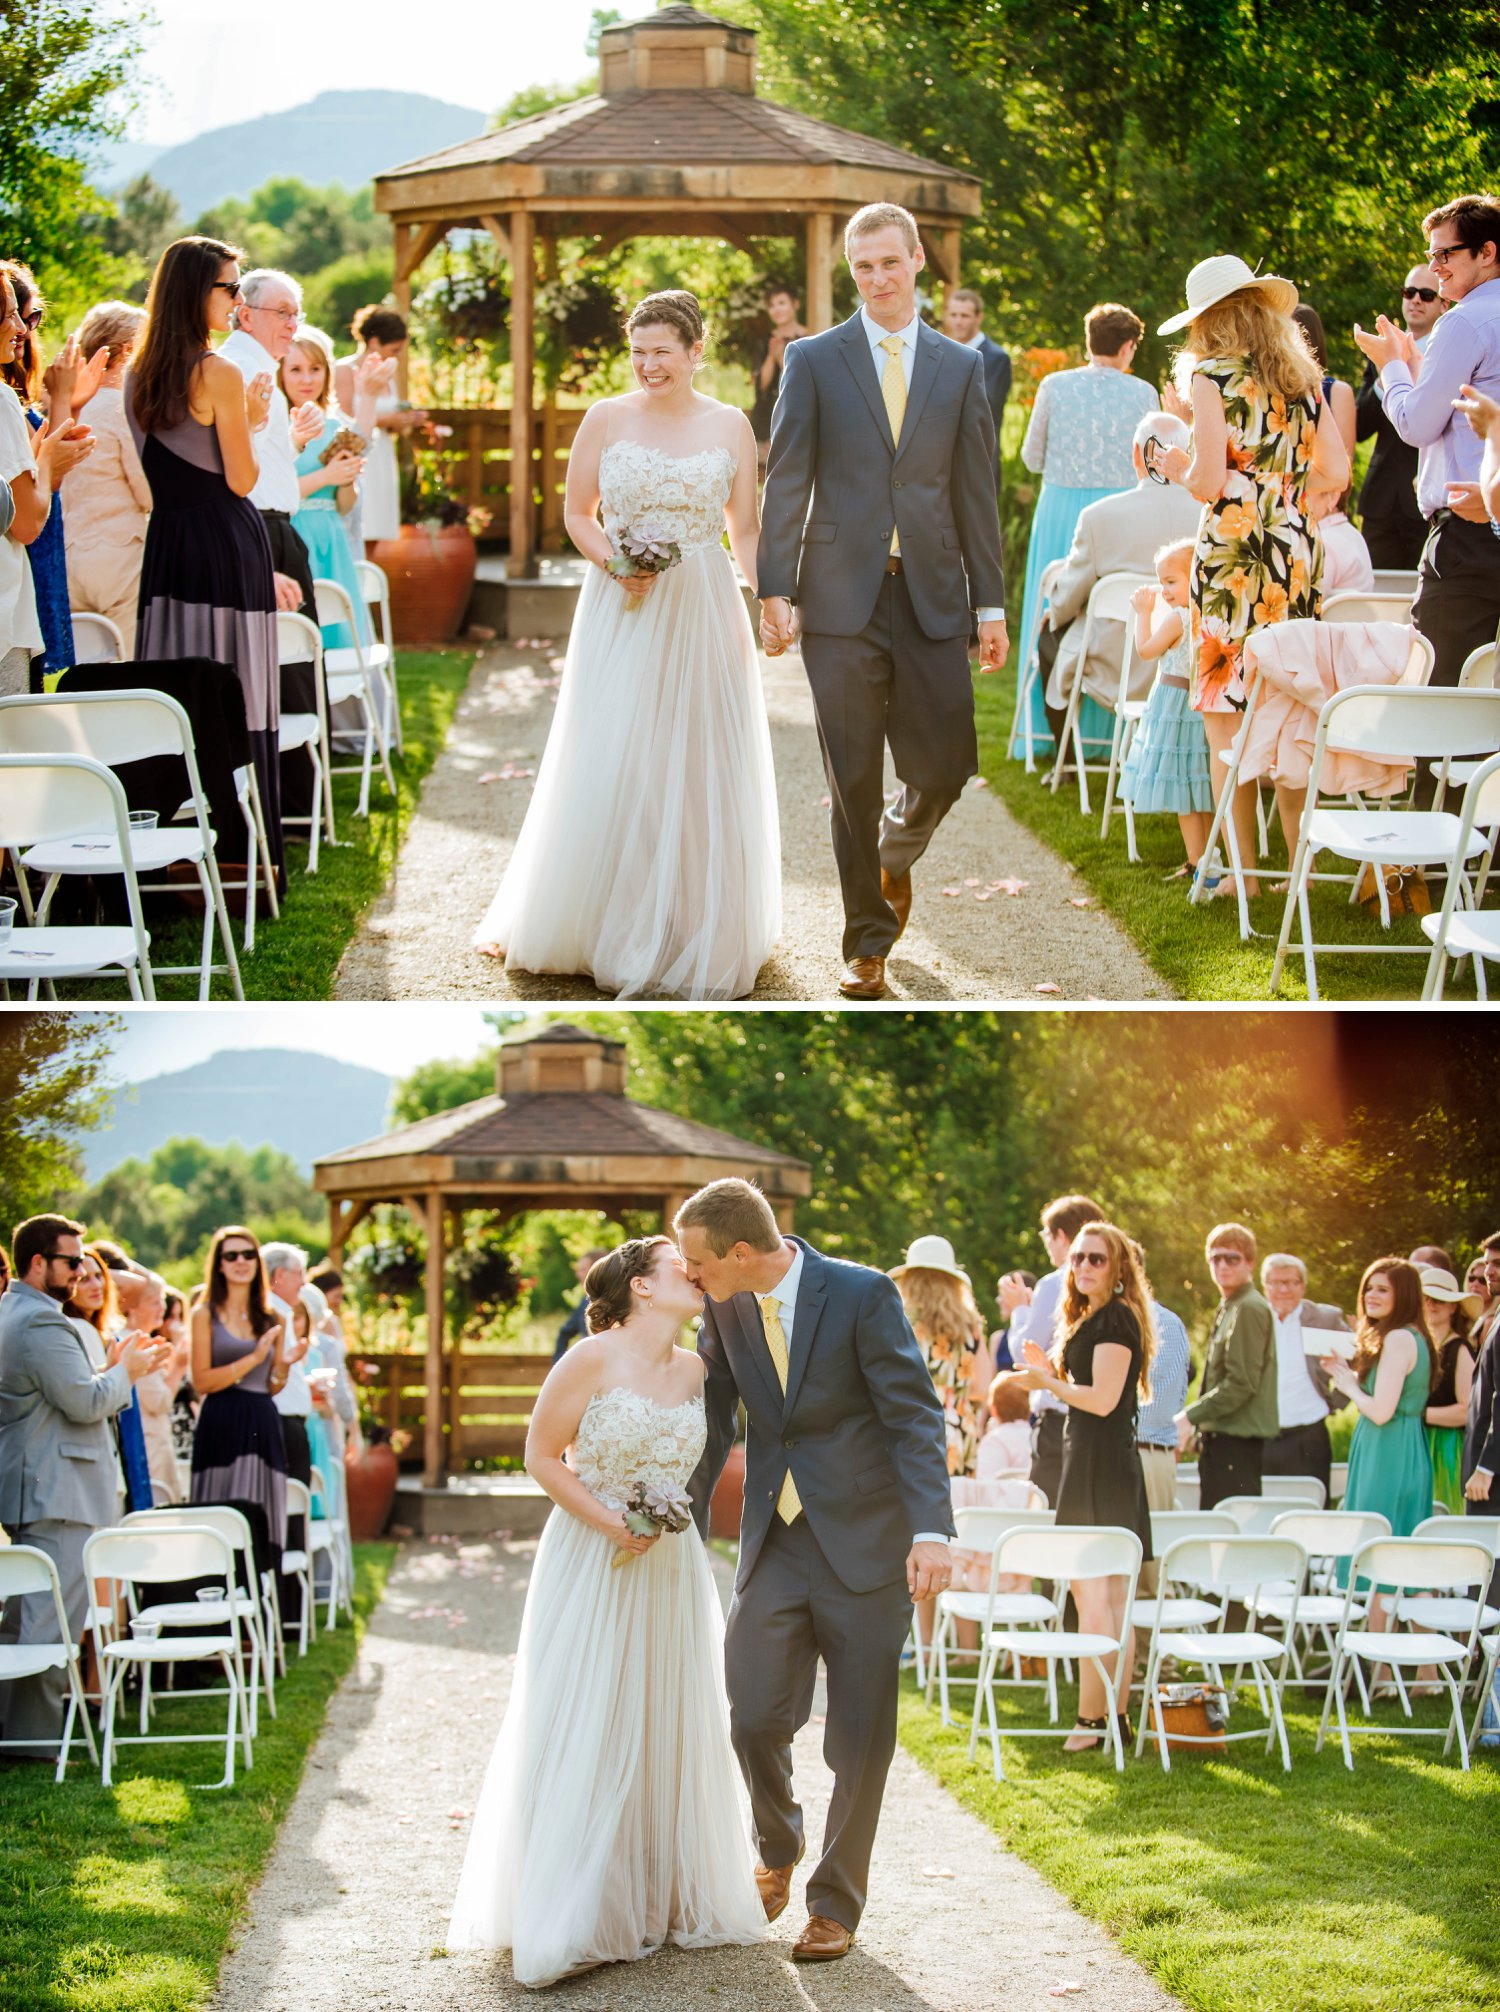 The outdoor chapel at the denver botanic gardens has a gazebo where the ceremony takes place.Photo by Maddie Mae Photography